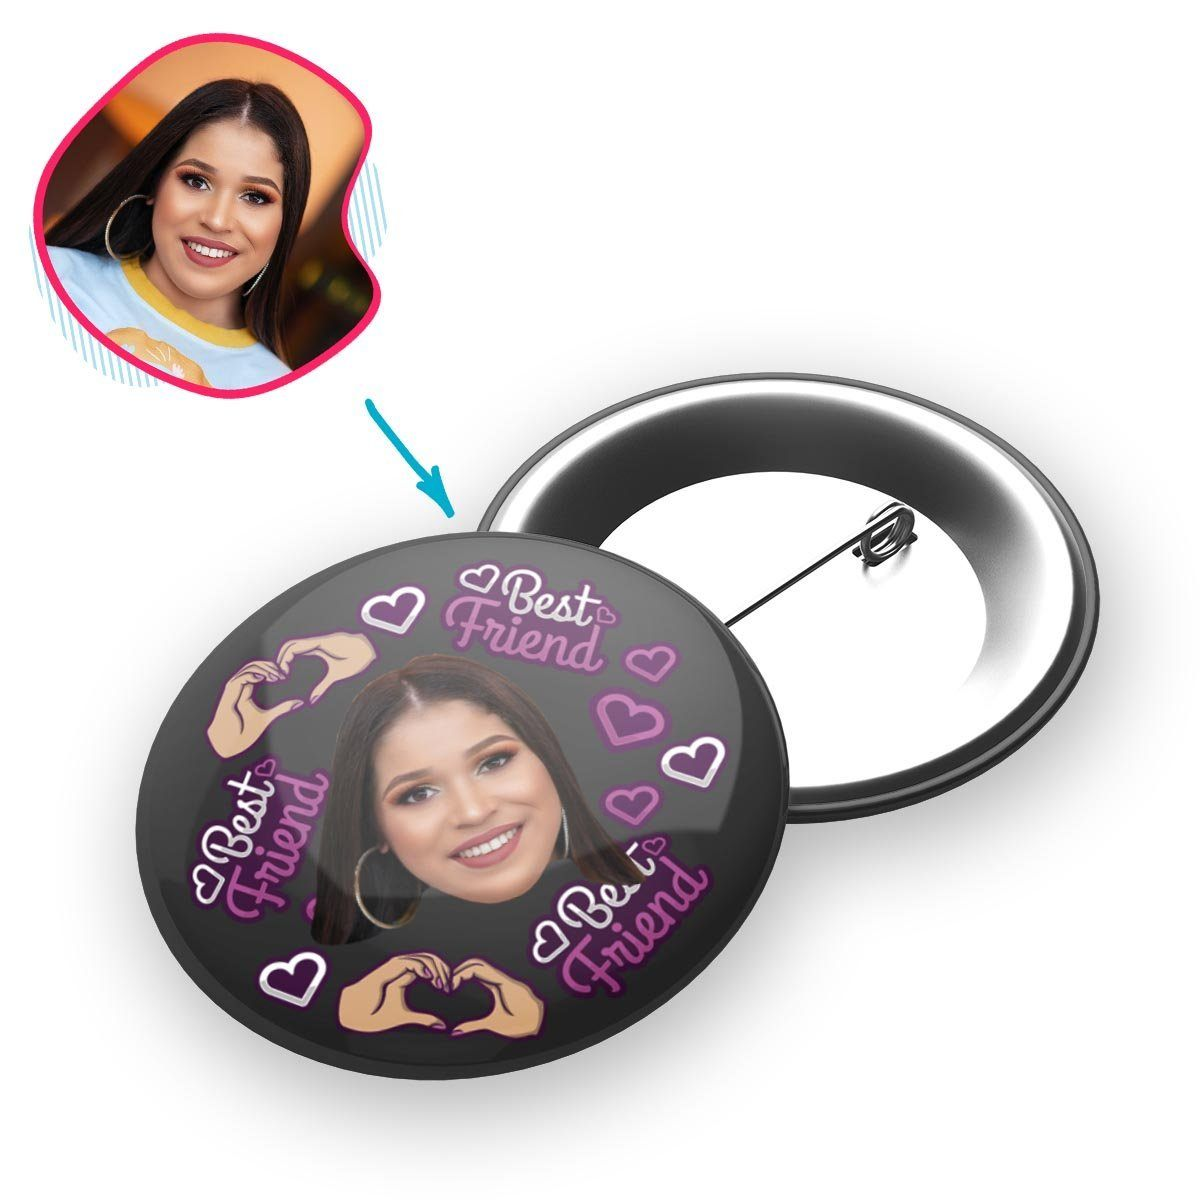 dark BFF for Her pin personalized with photo of face printed on it